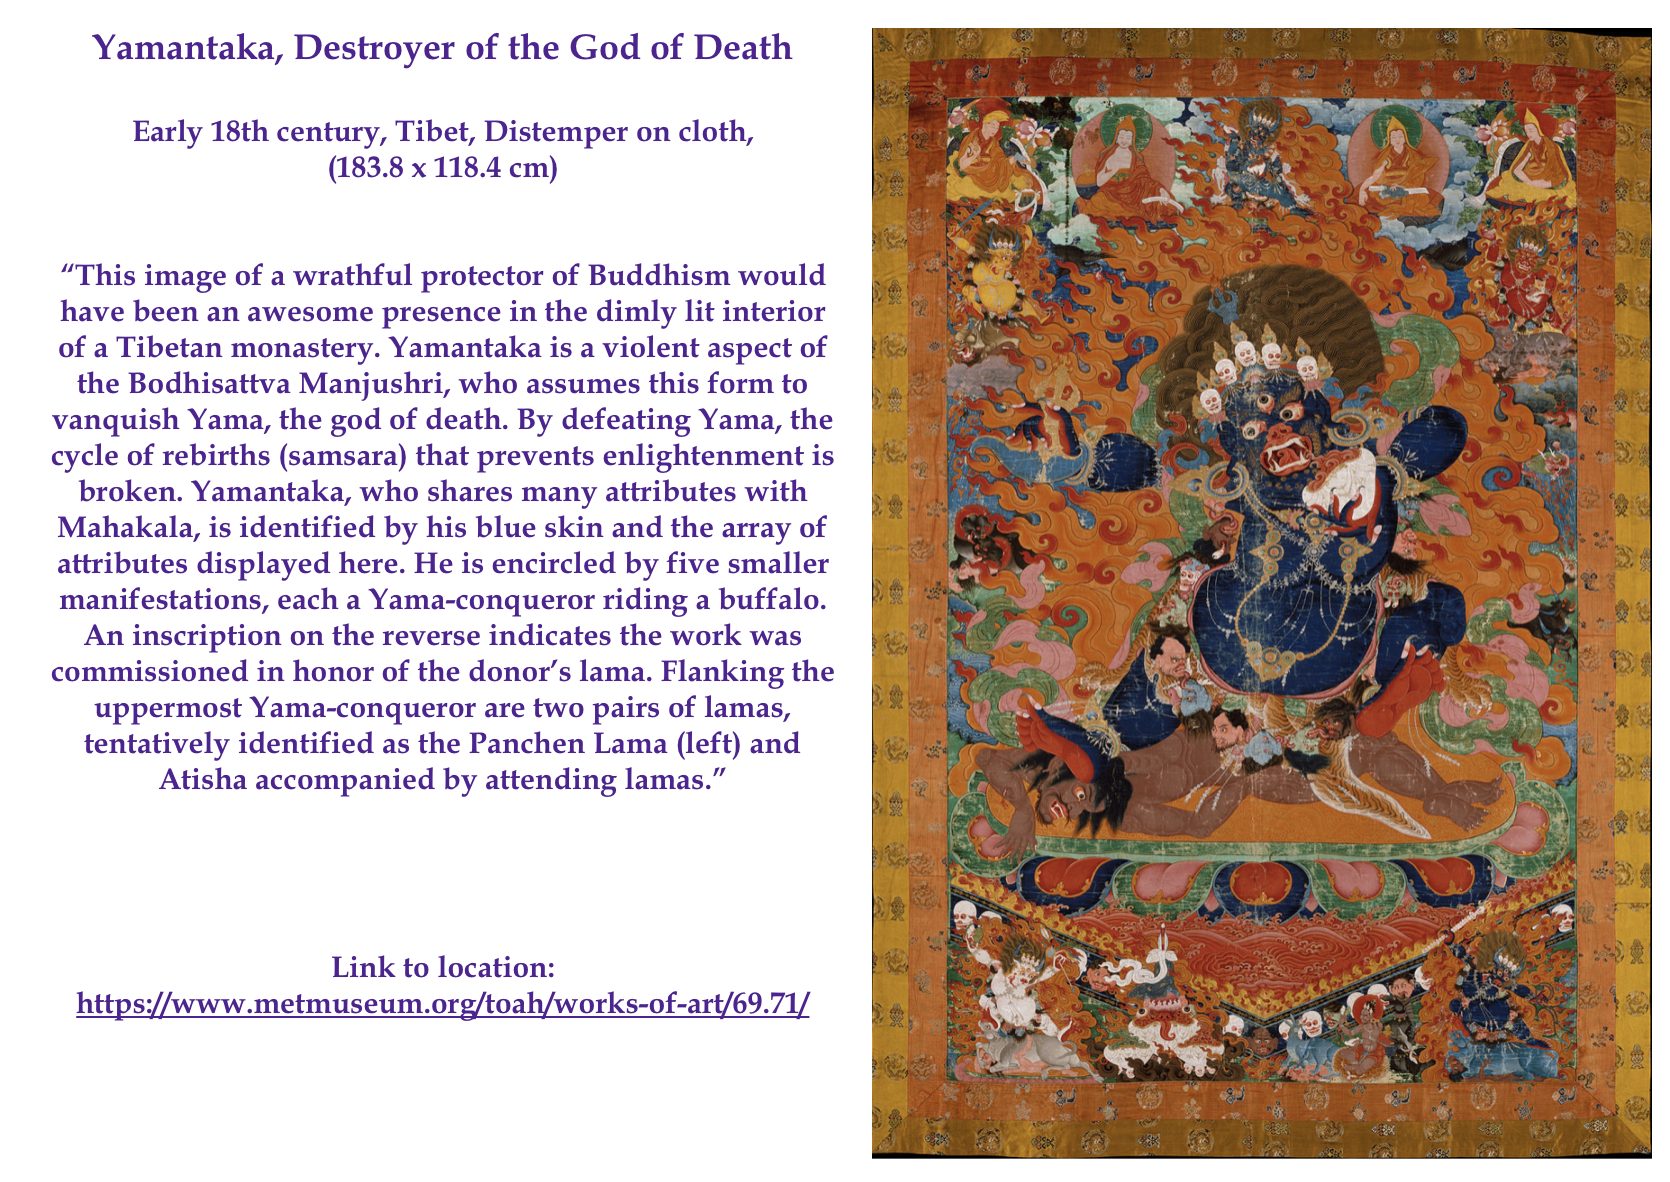 "Yamantaka, Destroyer of the God of Death, Early 18th century, Tibet, Distemper on cloth, (183.8 x 118.4 cm), ""This image of a wrathful protector of Buddhism would have been an awesome presence in the dimly lit interior of a Tibetan monastery. Yamantaka is a violent aspect of the Bodhisattva Manjushri, who assumes this form to vanquish Yama, the god of death. By defeating Yama, the cycle of rebirths (samsara) that prevents enlightenment is broken. 💞🌍🌎🌏💞"